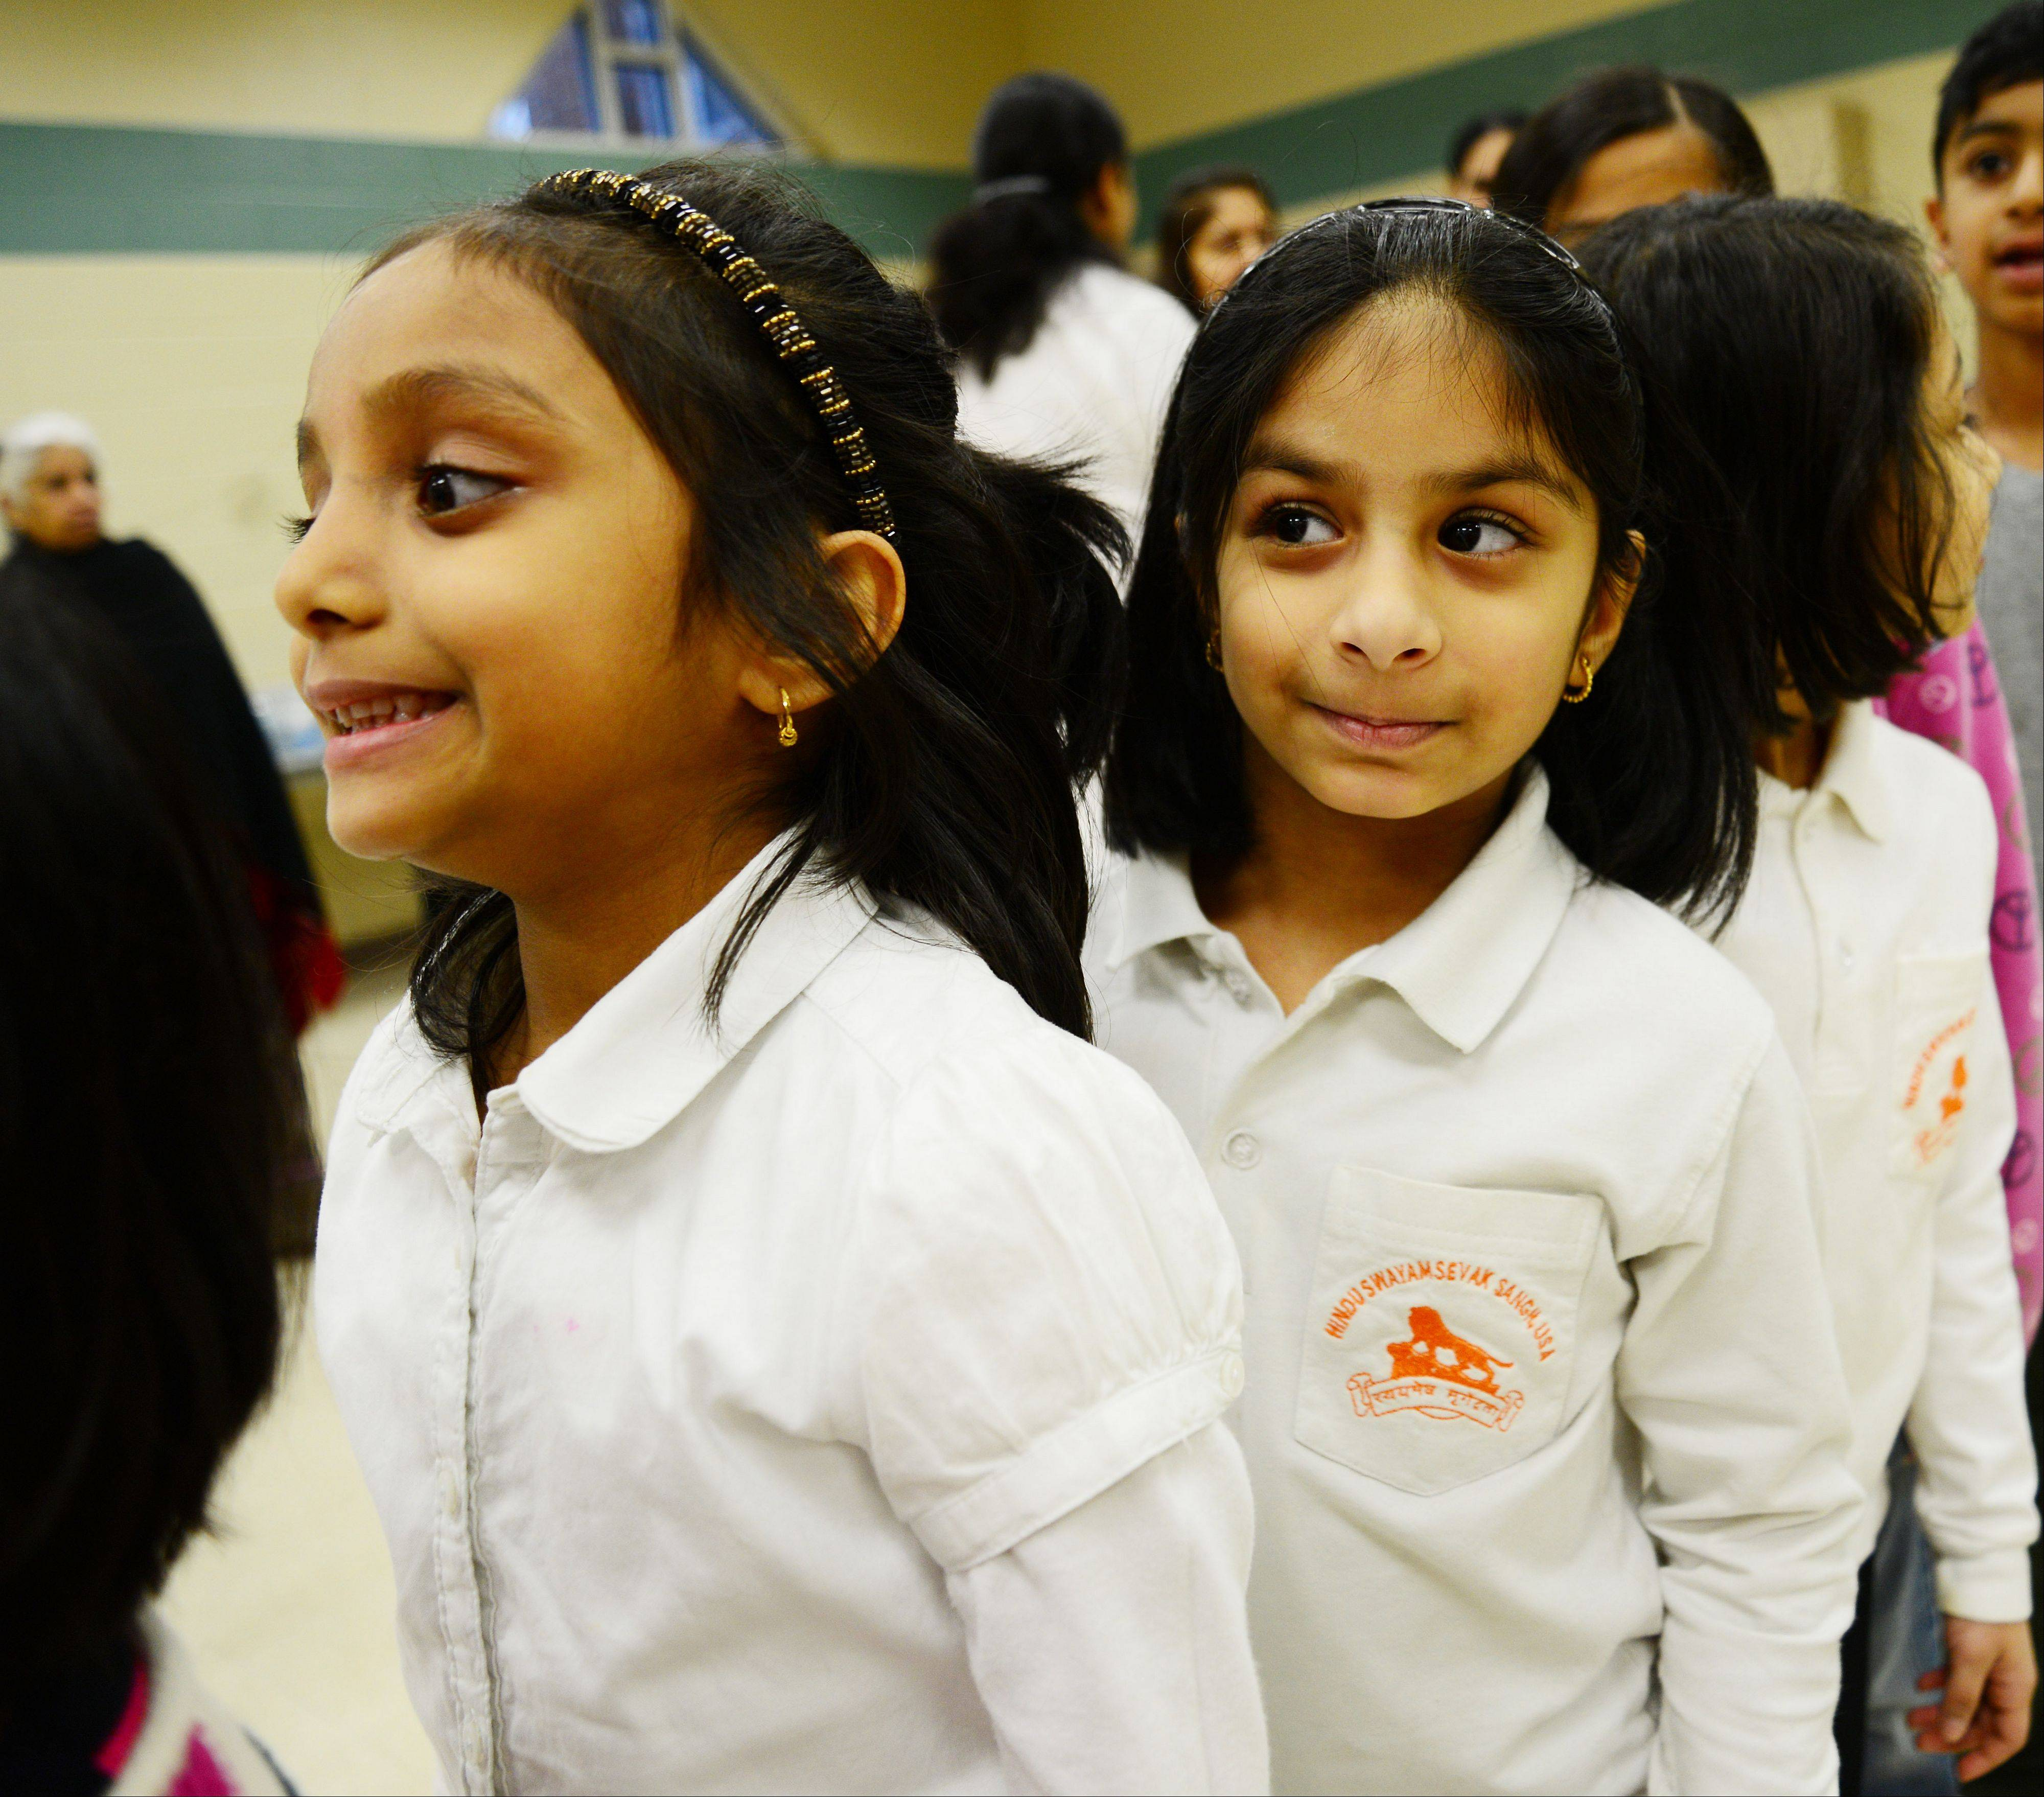 Anvitha Ellanki, 5, and Bhargaui Namboovi, 5, both of Naperville, are all smiles as they took part in the Naperville-Aurora chapter of HSS celebration of the 150th birth anniversary of Swami Vivekananda. He brought the eastern Hindu philosophy (including Yoga) to the USA for the first time in 1893. This event was held at the Eola Community Center in Aurora Saturday.